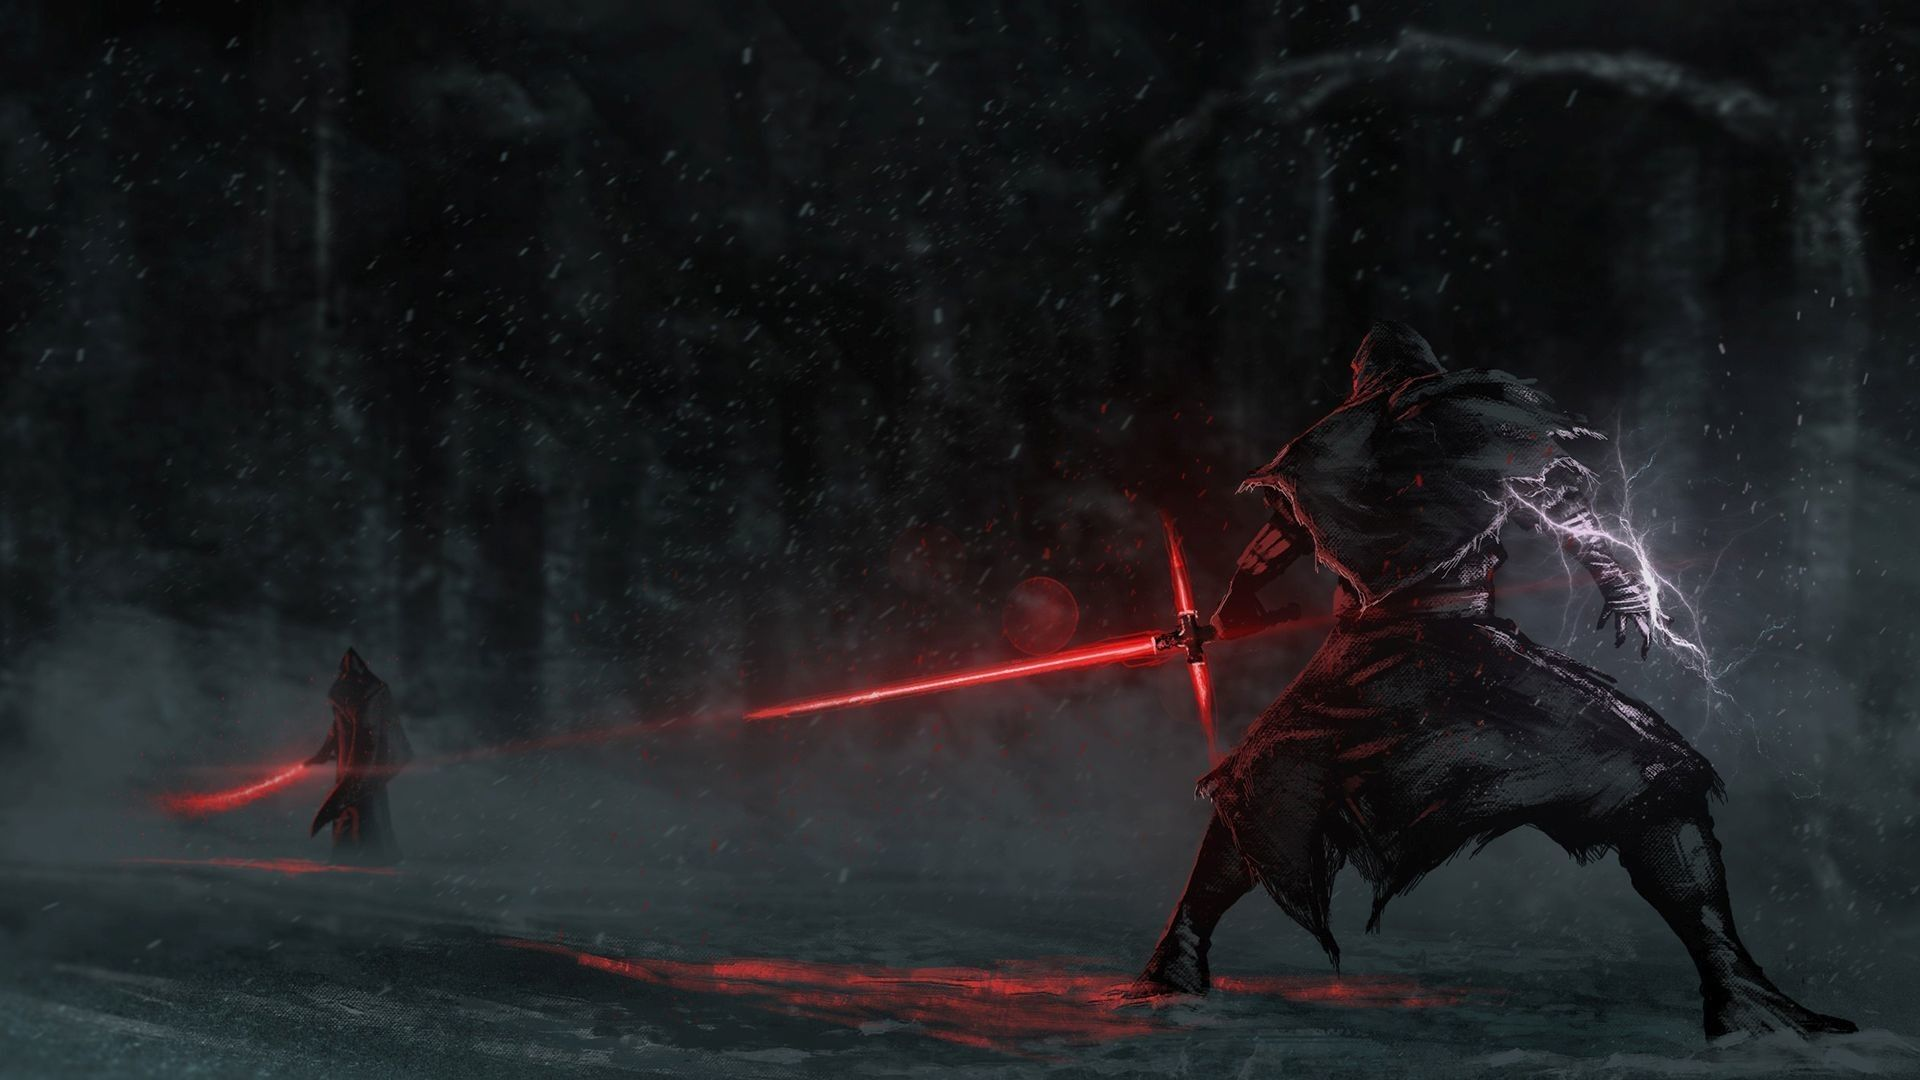 Star Wars Lightsaber Duel Wallpapers